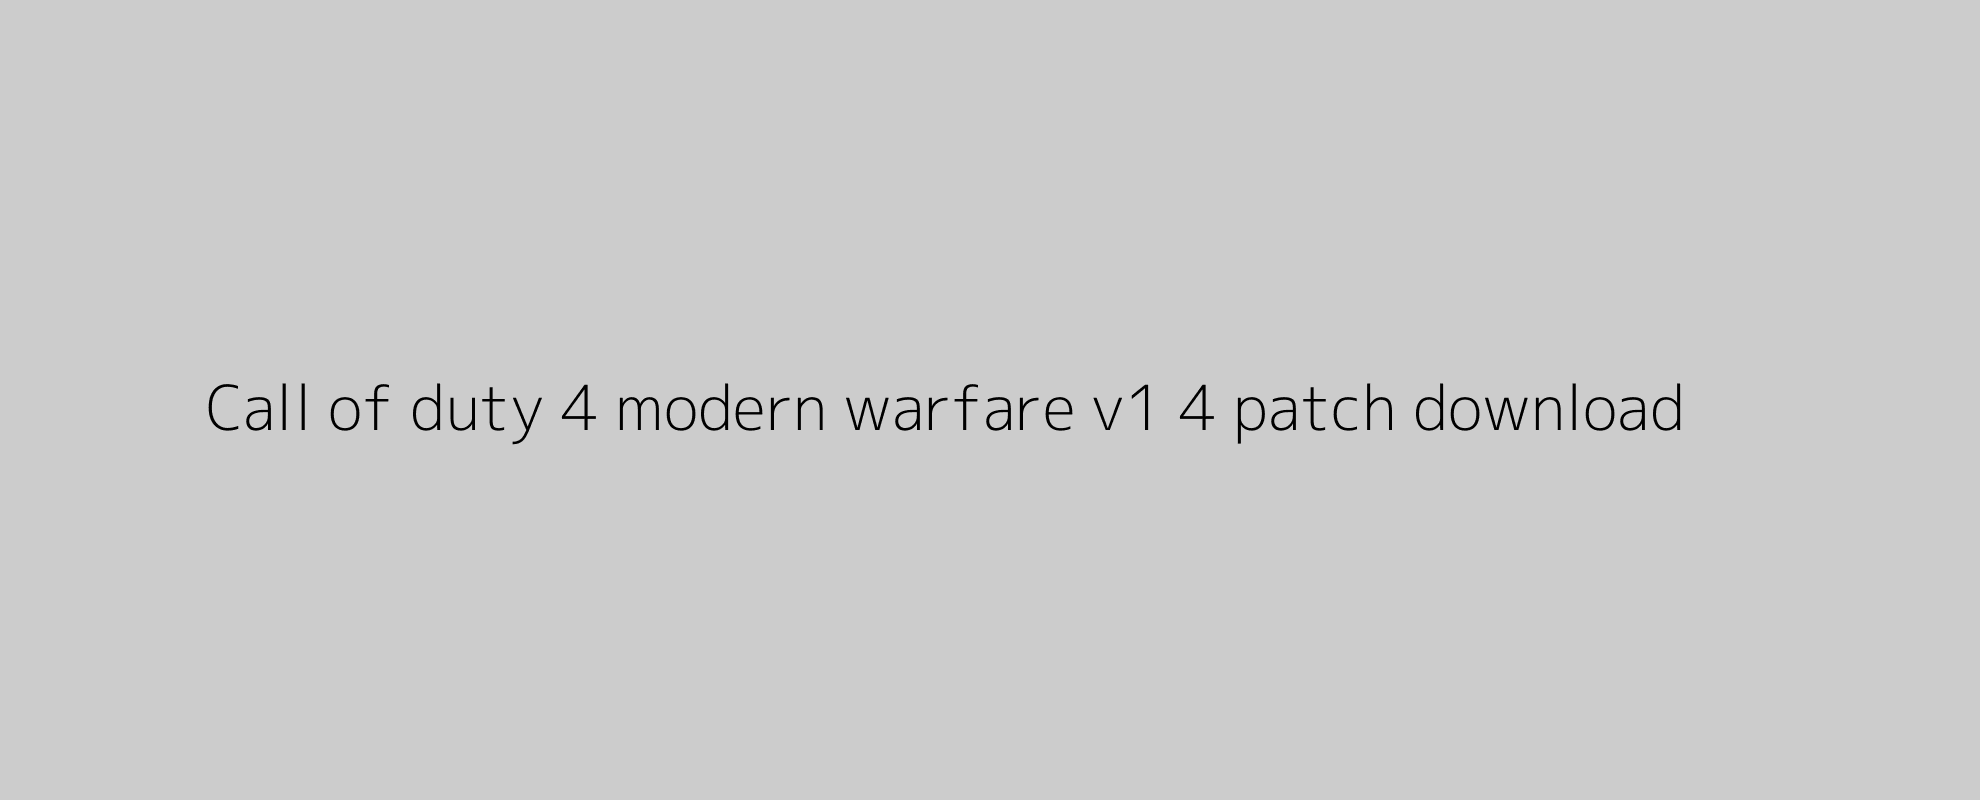 Call of duty 4 modern warfare v1 4 patch download